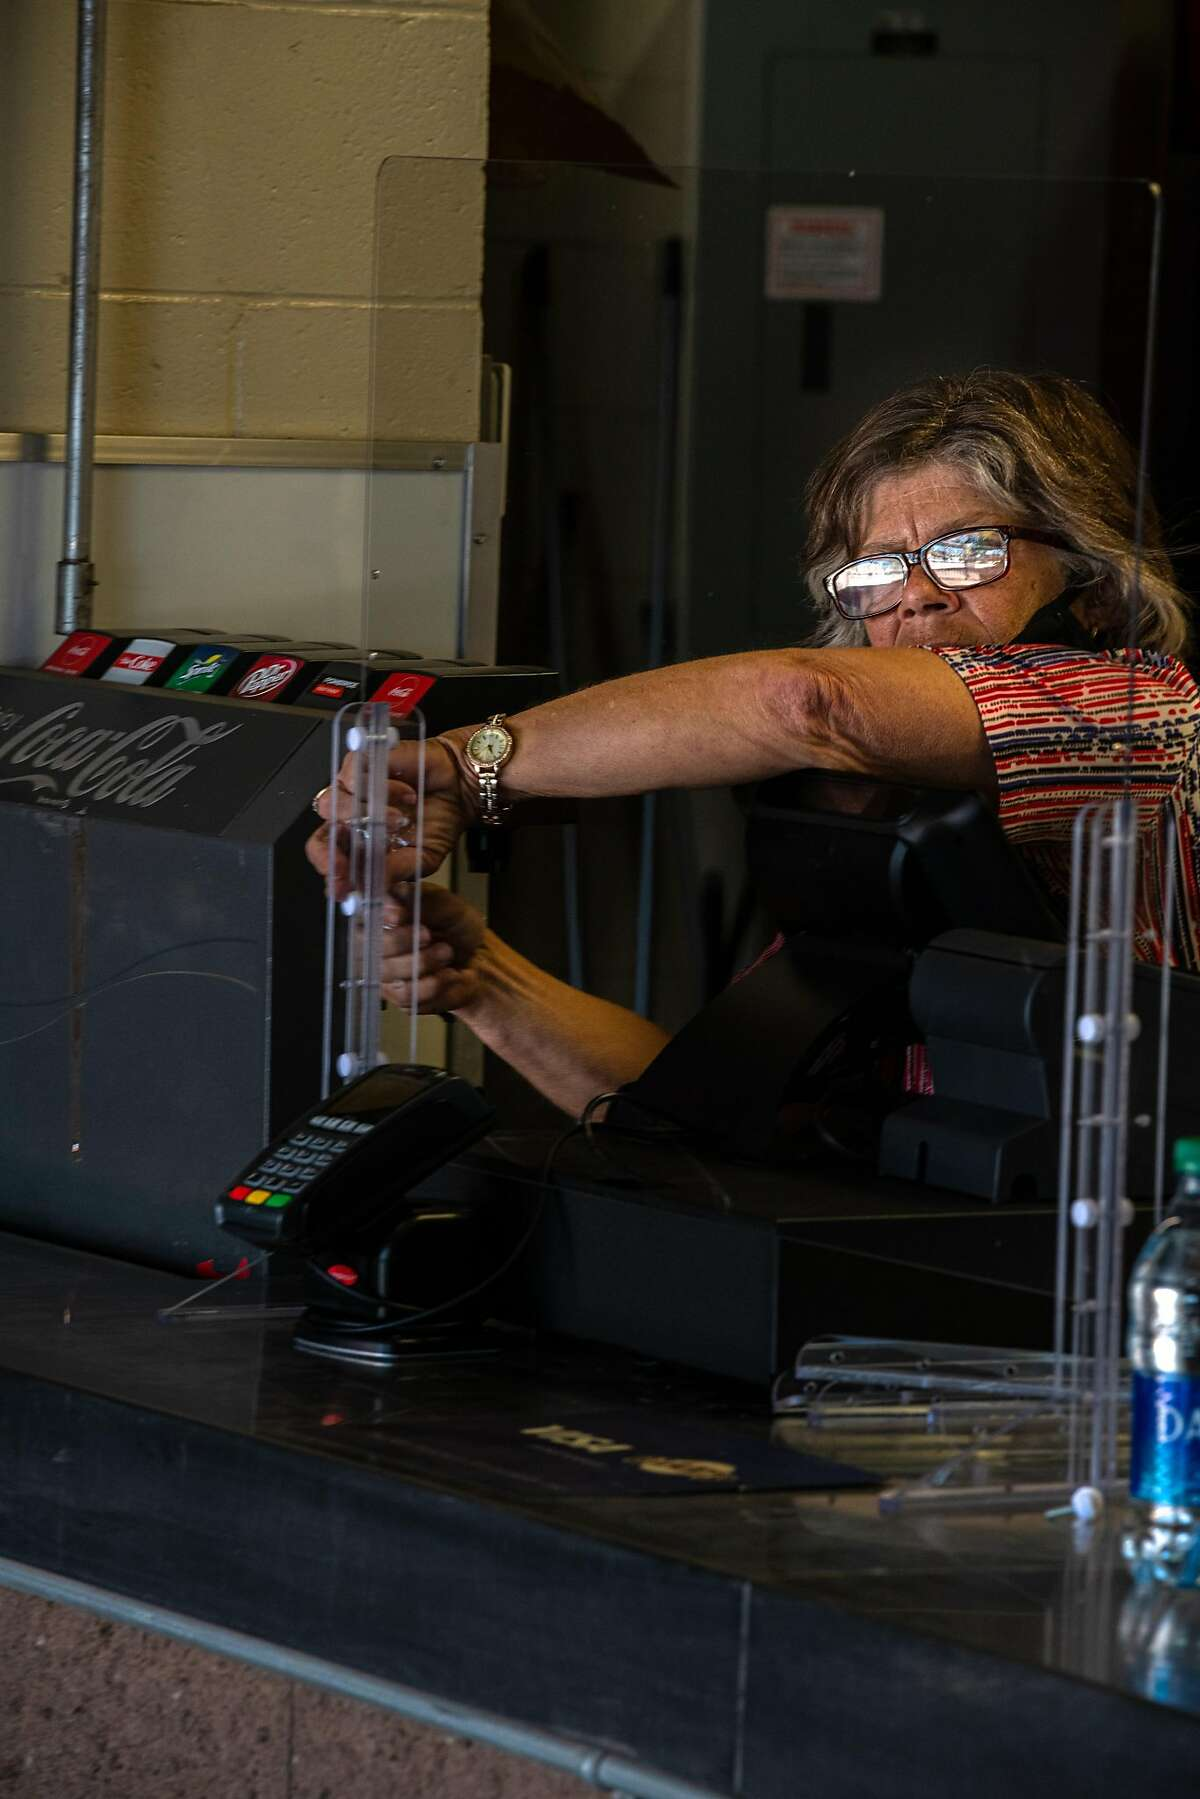 Vendors set up plexiglass barriers at the concessions during the first San Francisco Giants practice at Scottsdale stadium before opening day of Spring Training in the Cactus League, on Monday, Feb. 22, 2021, in Scottsdale, Ariz..